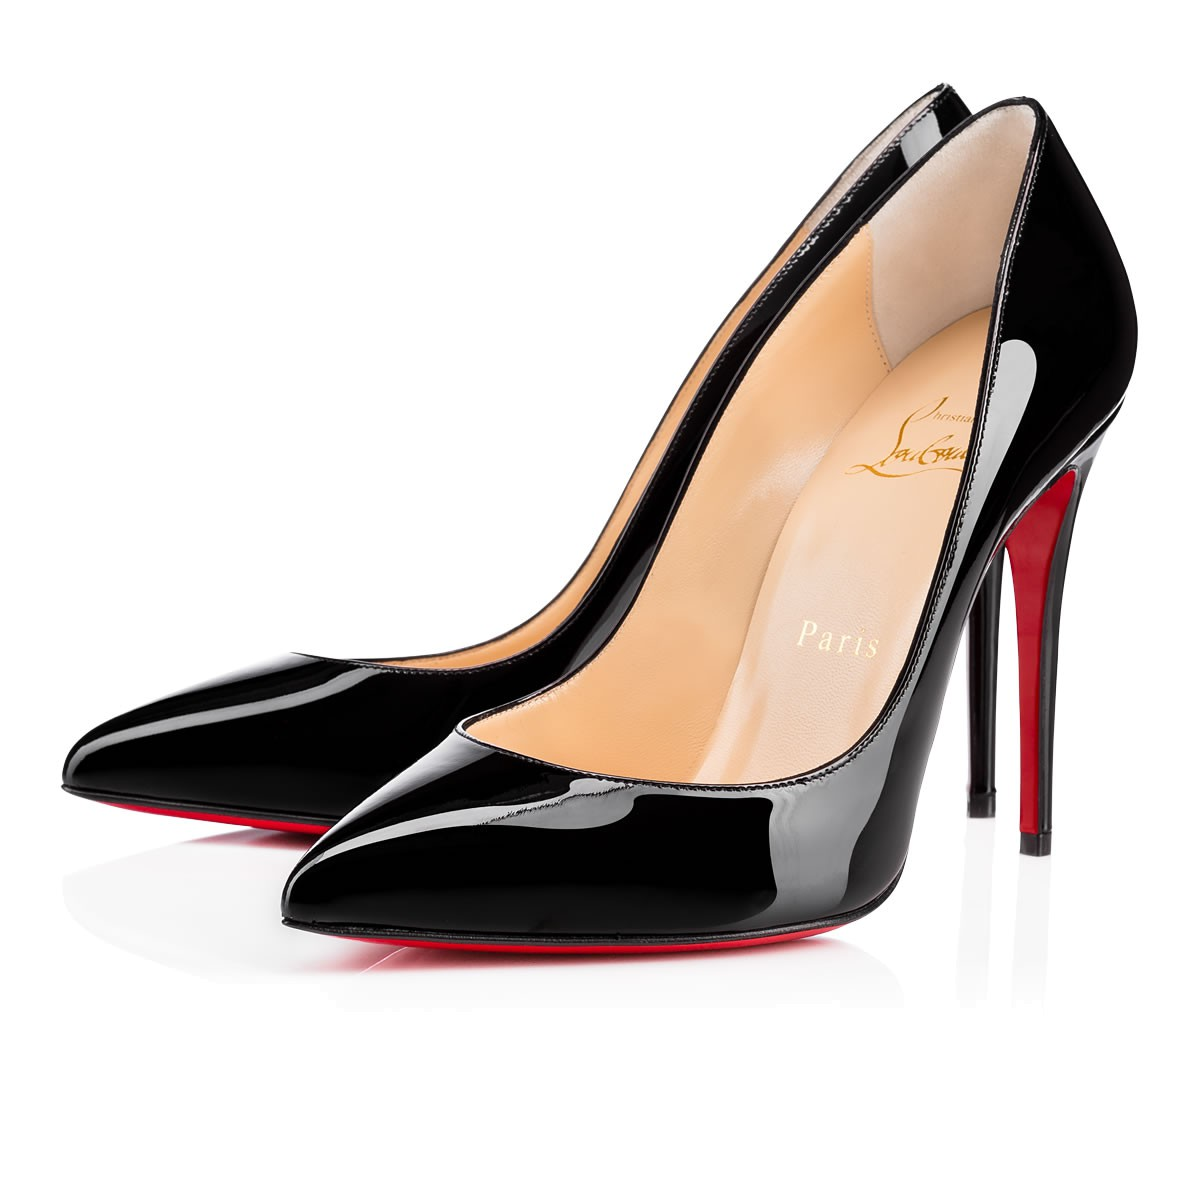 official photos dd819 b973a Christian Louboutin Pigalle Follies 100 patent leather pumps